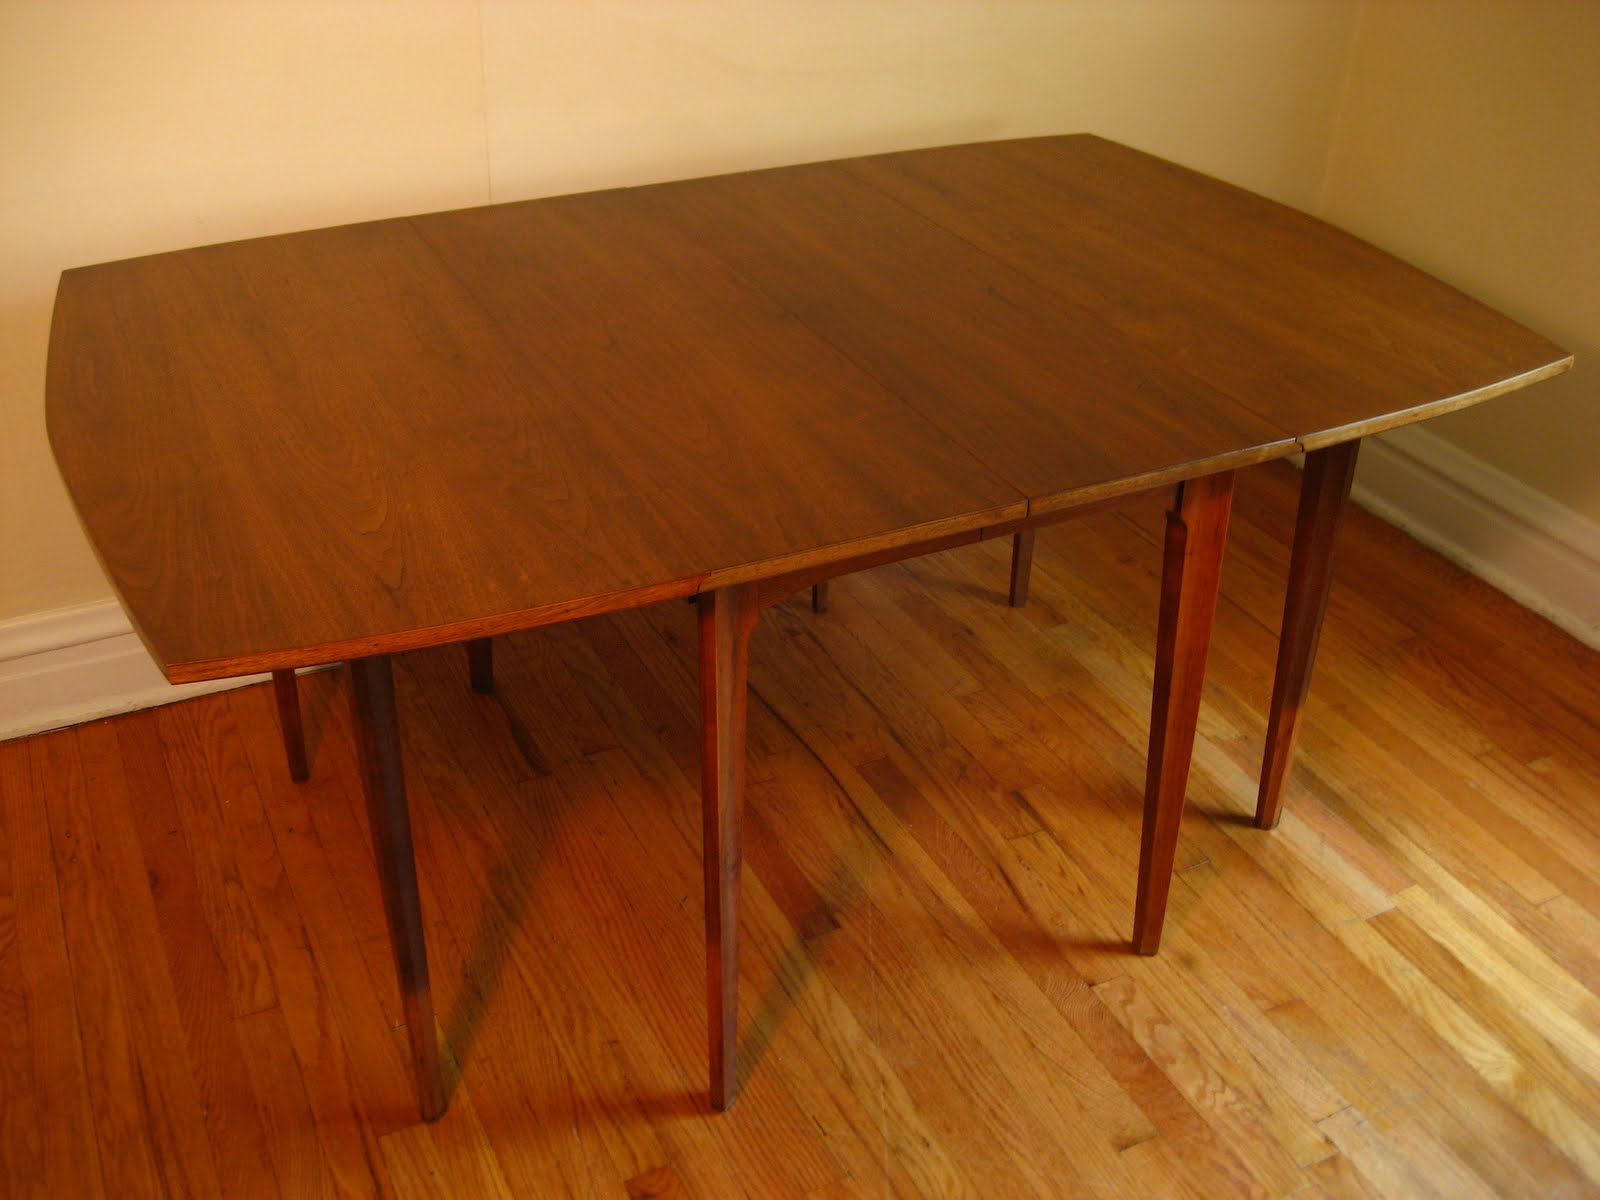 Modern Dining Table With Leaf Flatout Design Mid Century Modern Dining Table